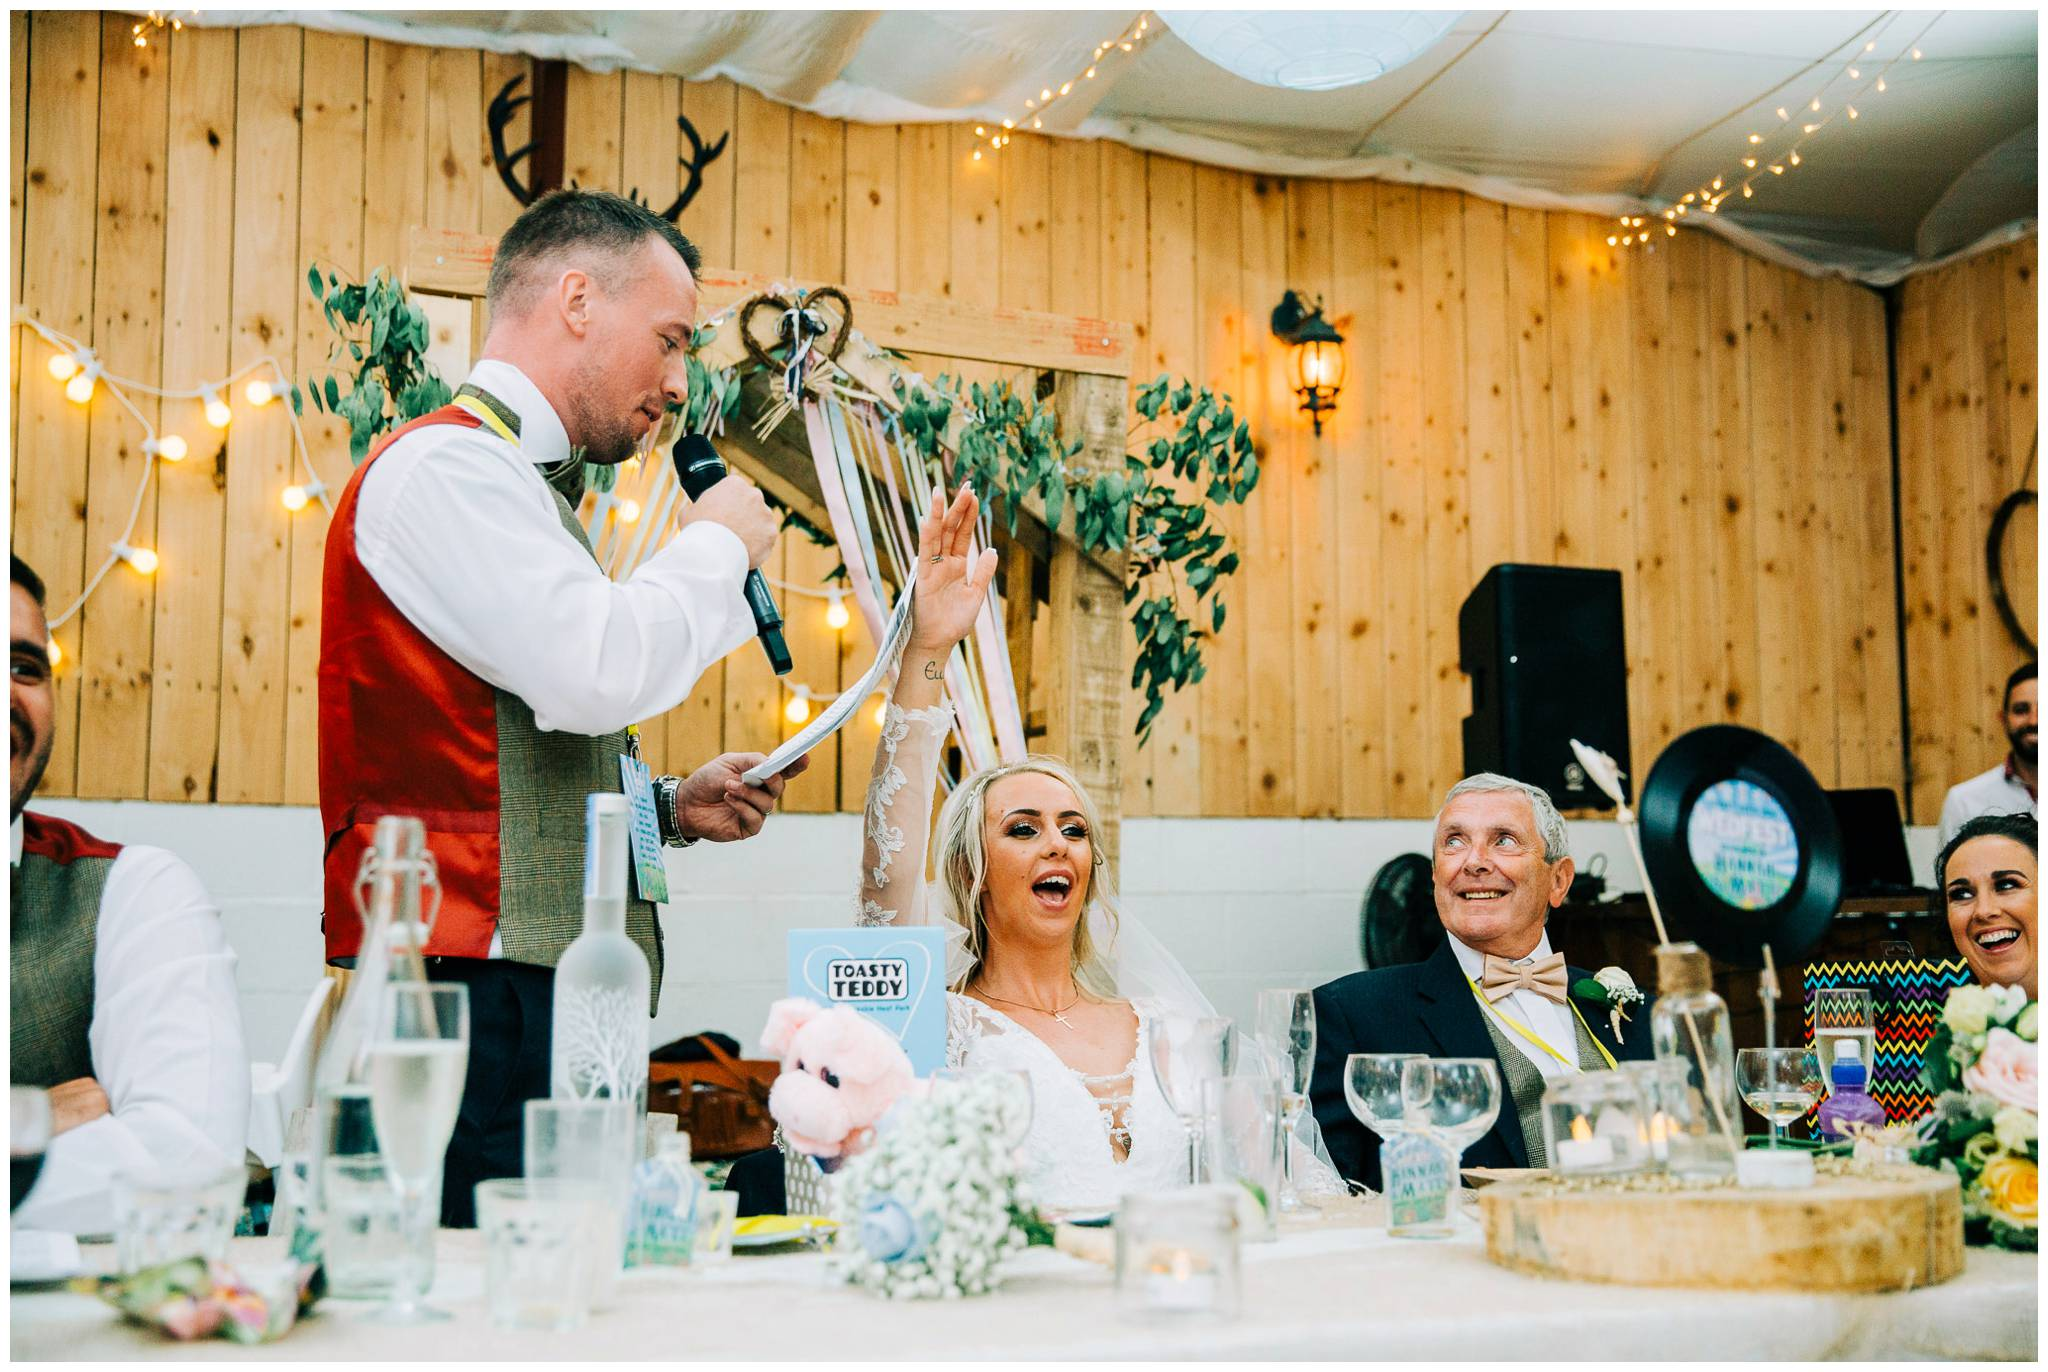 Festival wedding at Wellbeing Farm  - Bolton Wedding Photographer_0077.jpg